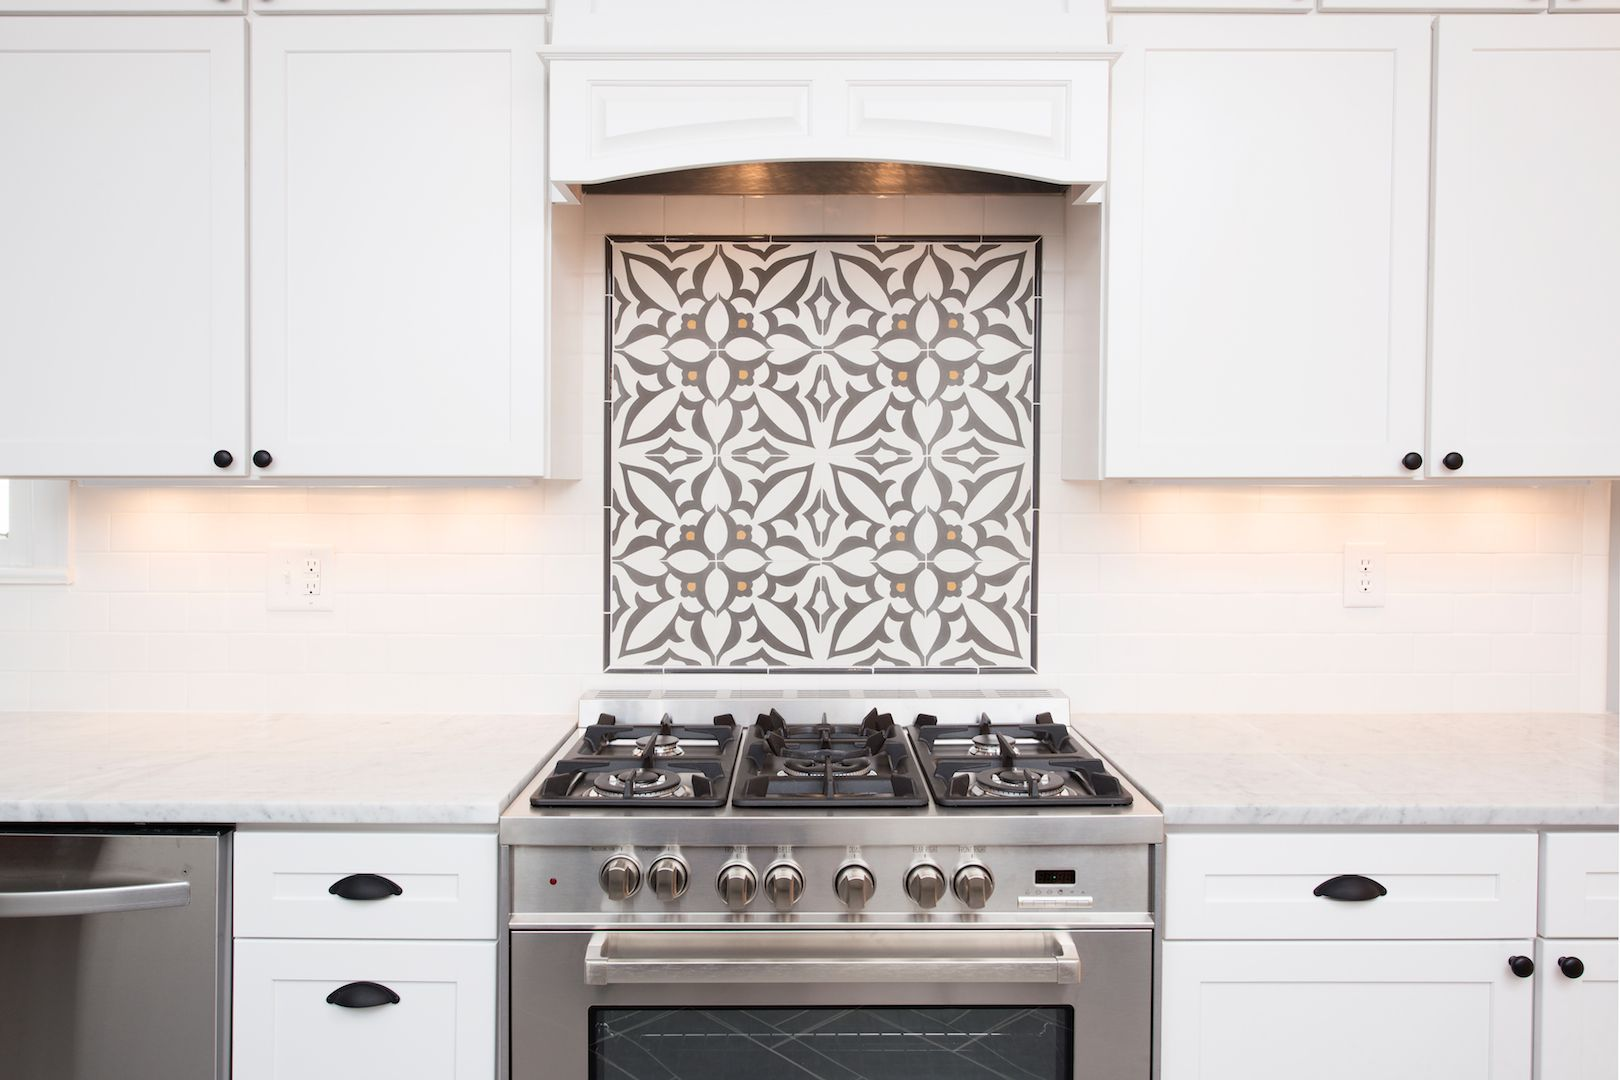 kitchen backsplash accent tile cement tile backsplash accent cementtileshop photo credit whonphoto hexagon tile 2791